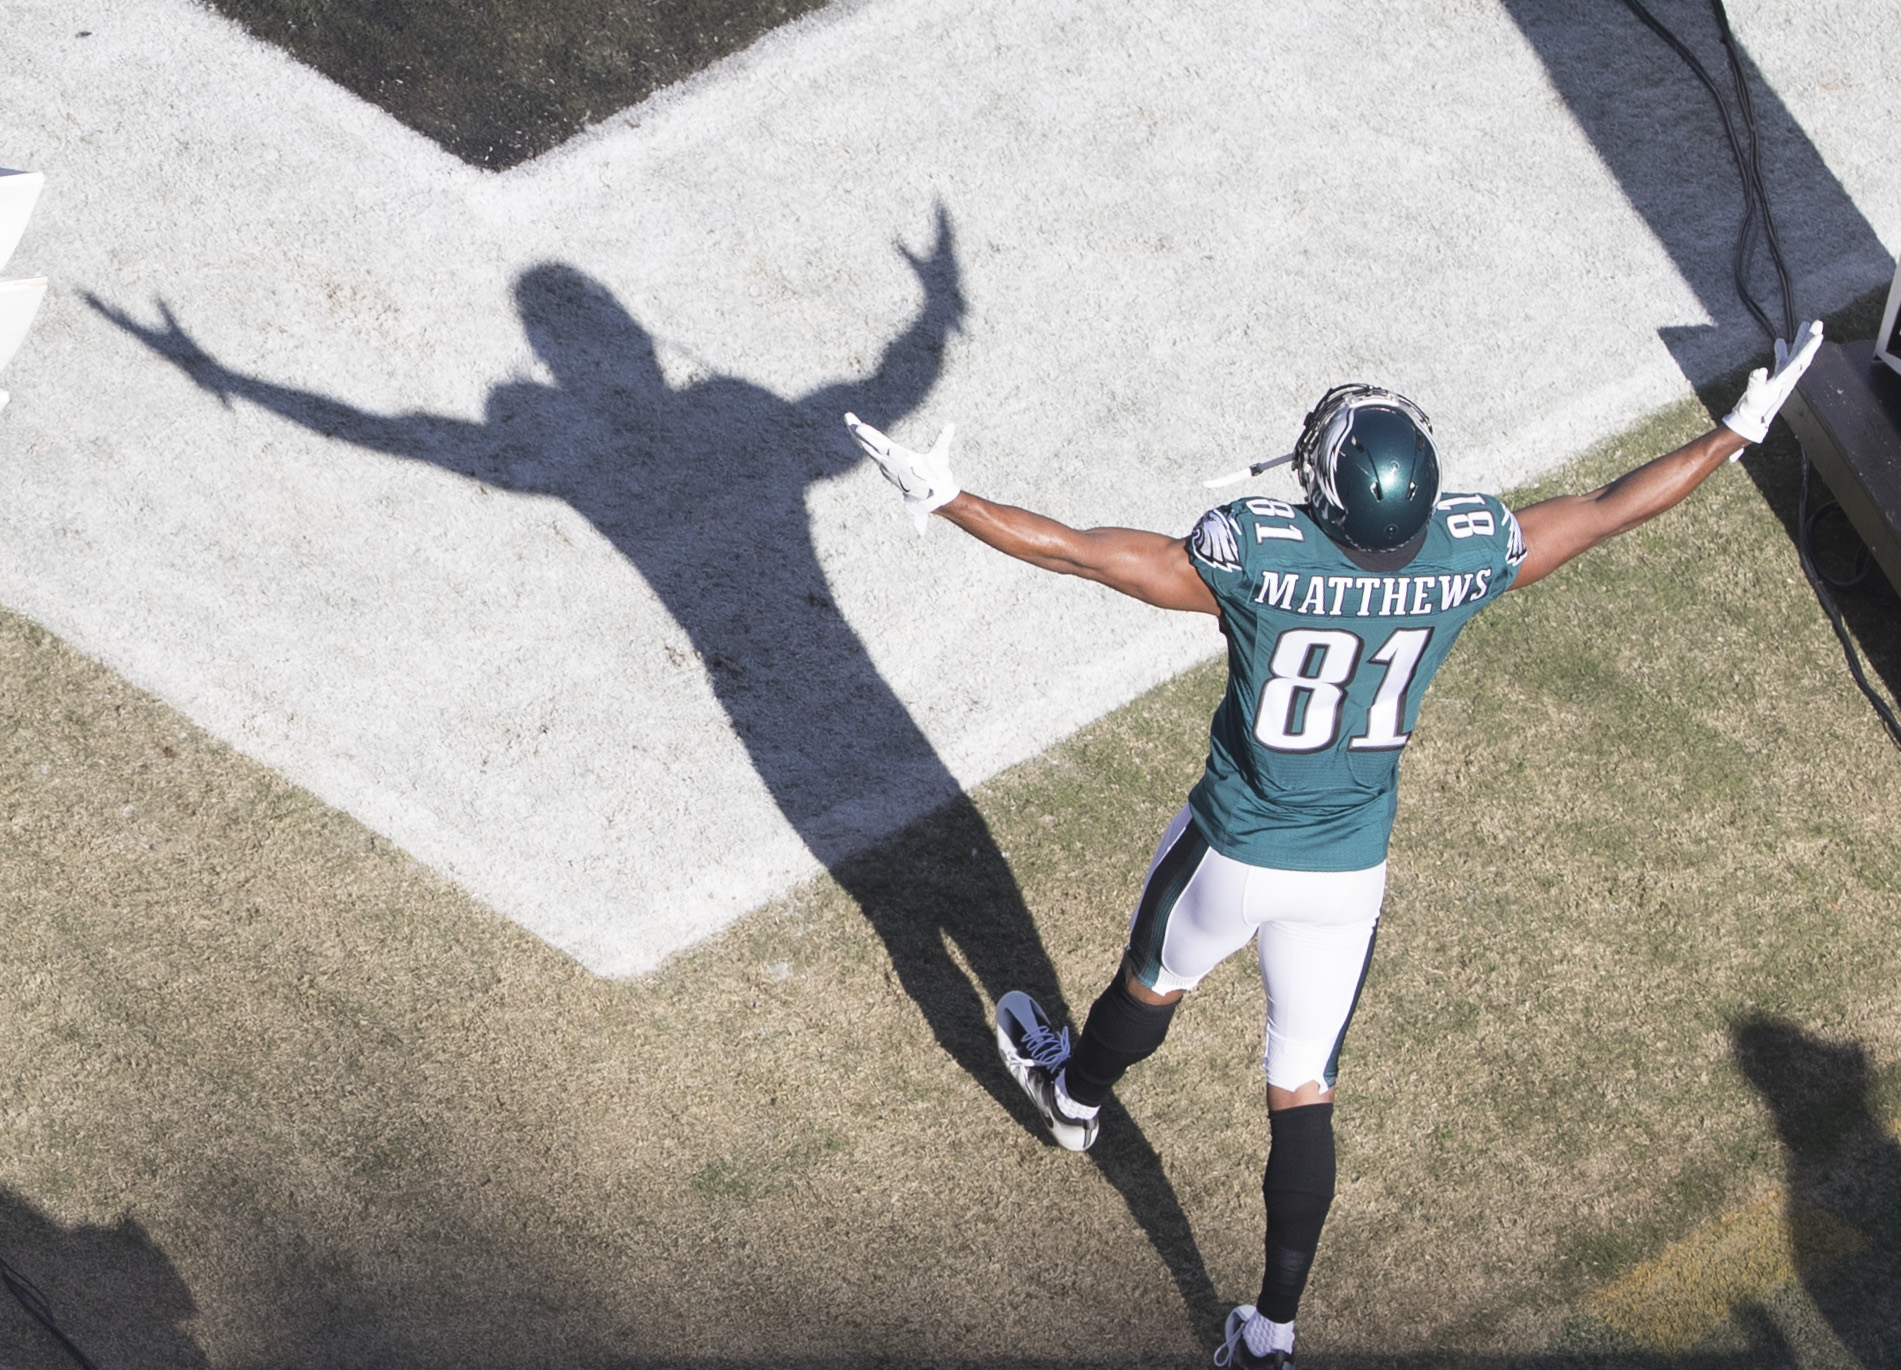 Roster move: Eagles trade Jordan Matthews to Buffalo Bills